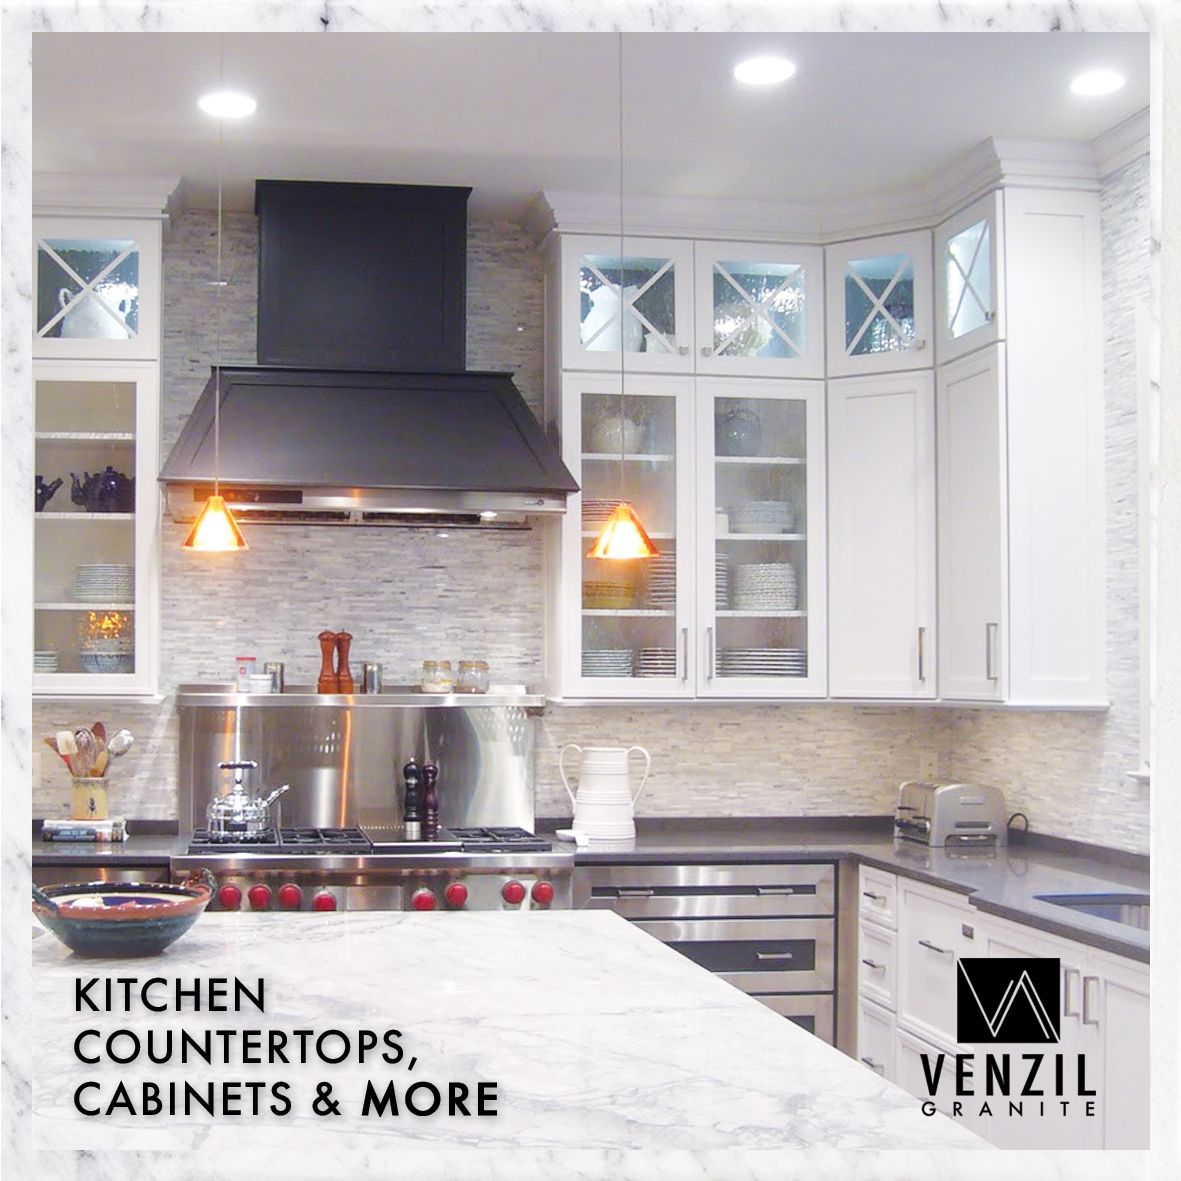 Venzil Granite Do It All When It Comes To Creating Designing And Installing Custom Natural Stone Cou Natural Stone Countertops Countertops Kitchen Countertops